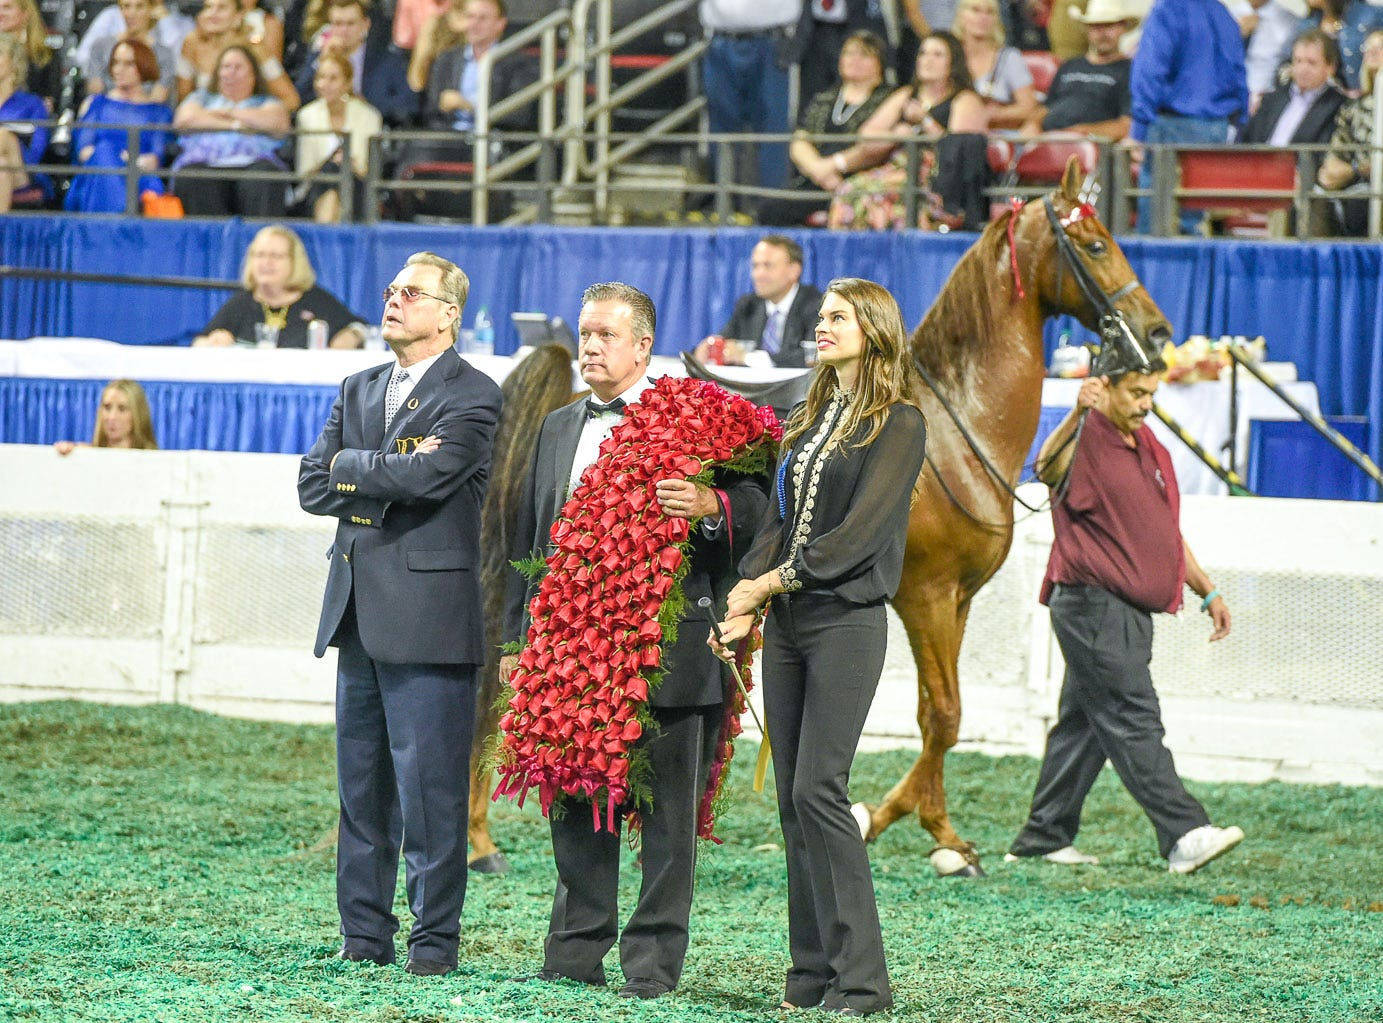 Kelly Lockhart and trainer Larry Hodge look on while Daniel Lockhart give his victory speech while The Daily Lottery walks with caretaker before victory pass after winning the 5 Gaited World's Grand Championship